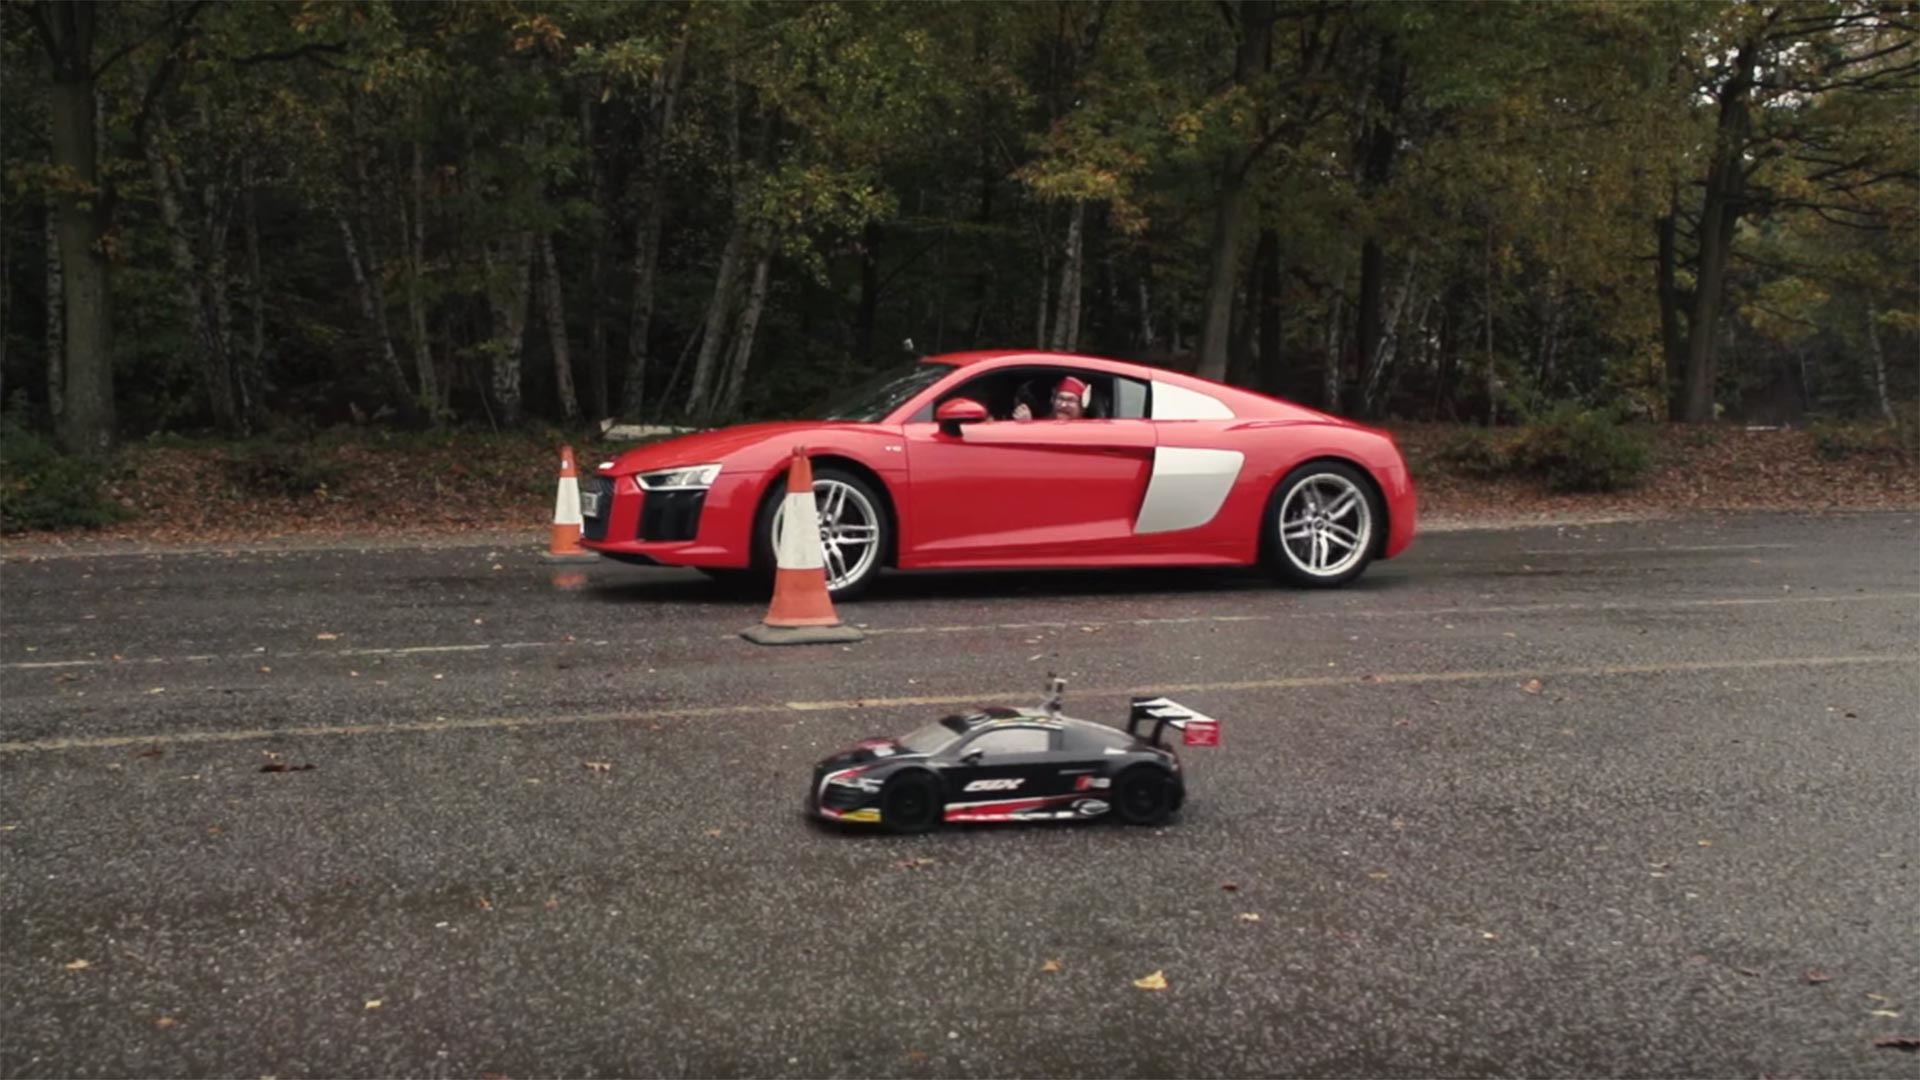 Watch An Audi R8 Rc Car Race The Real Thing Drag